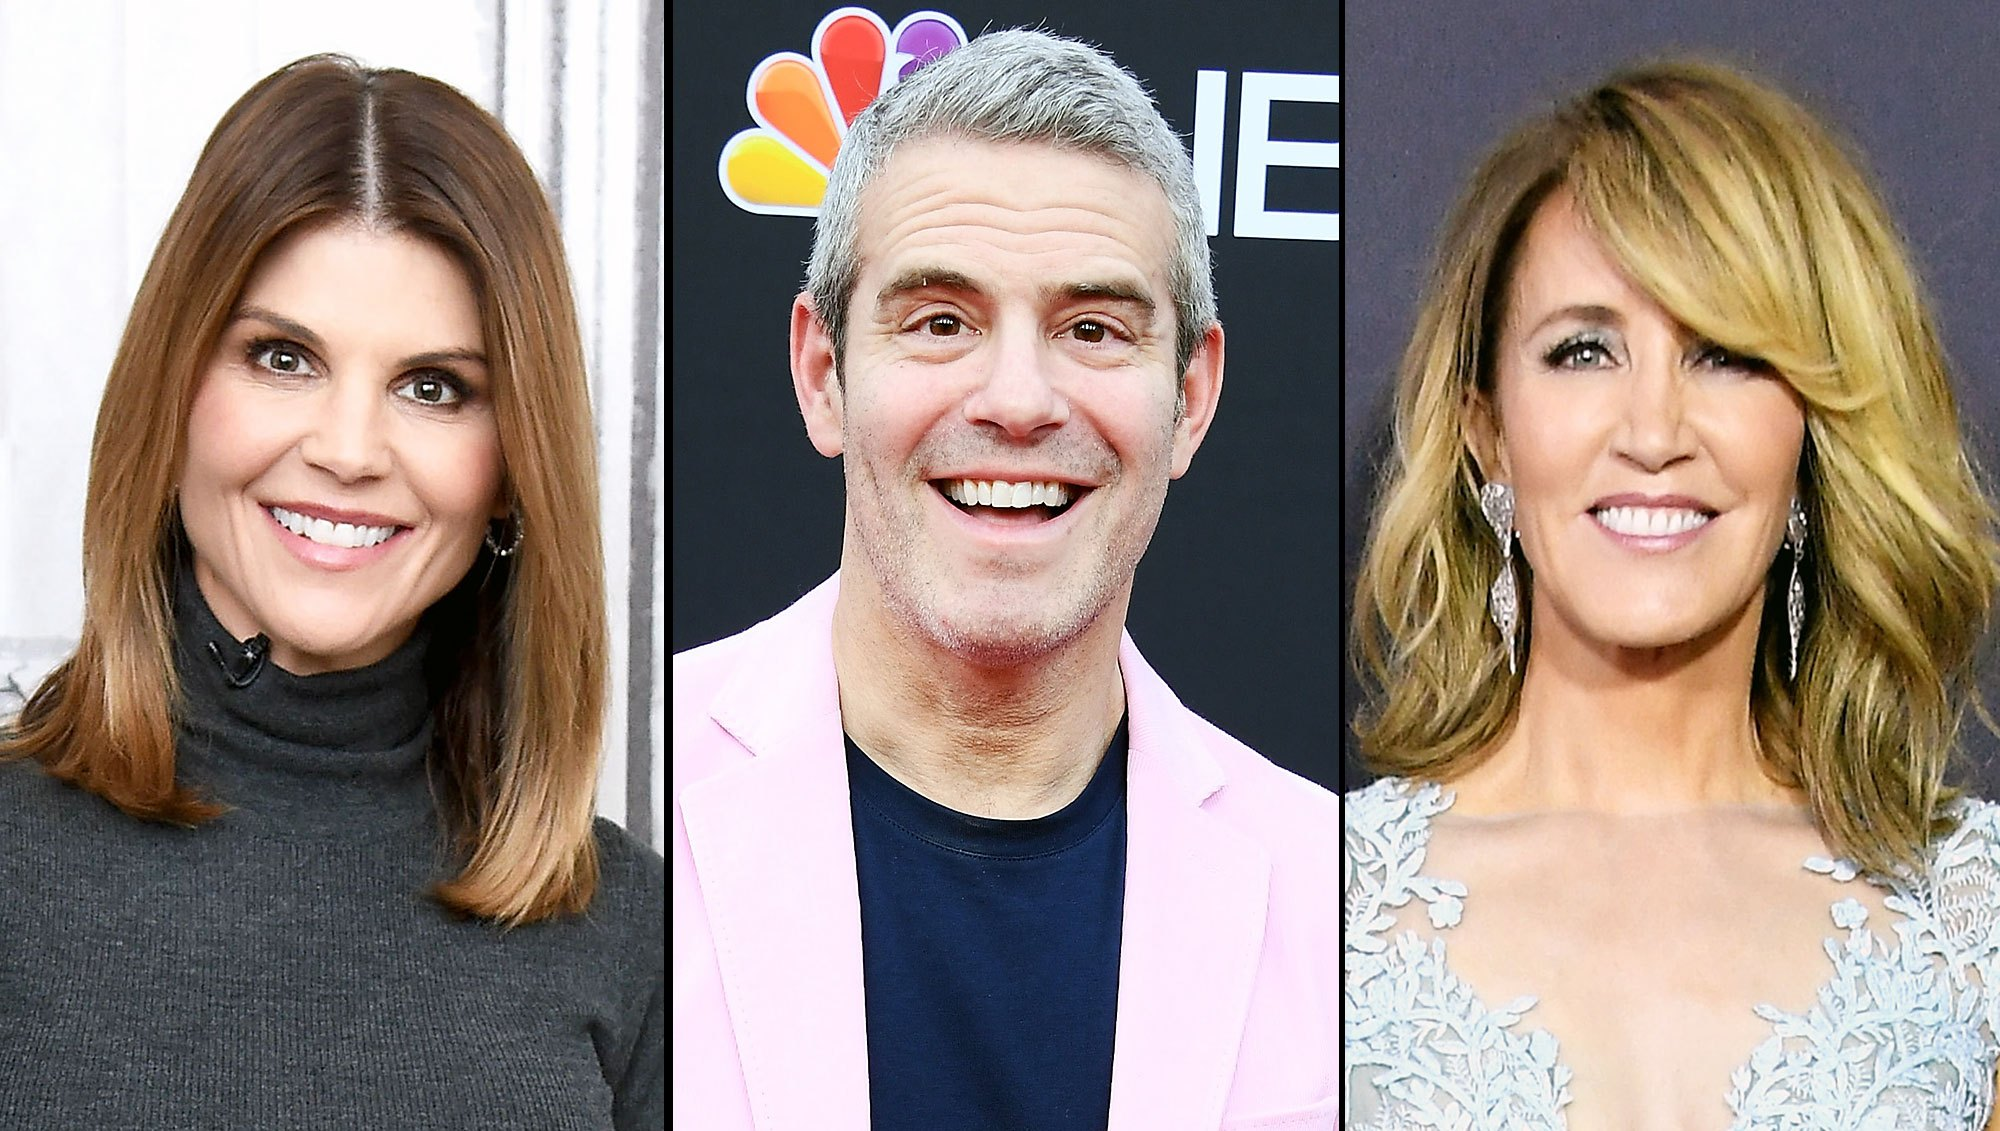 Andy Cohen Reacts Lori Loughlin Felicity Huffman Fake Real Housewives Taglines